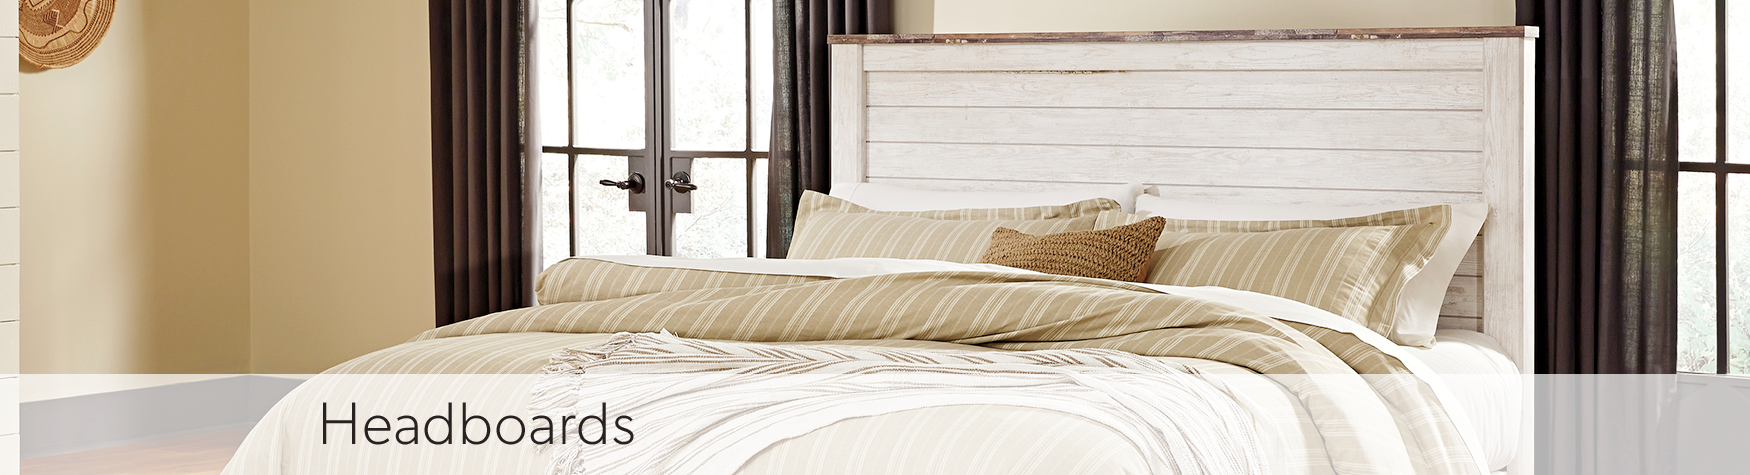 headboards-banner.png